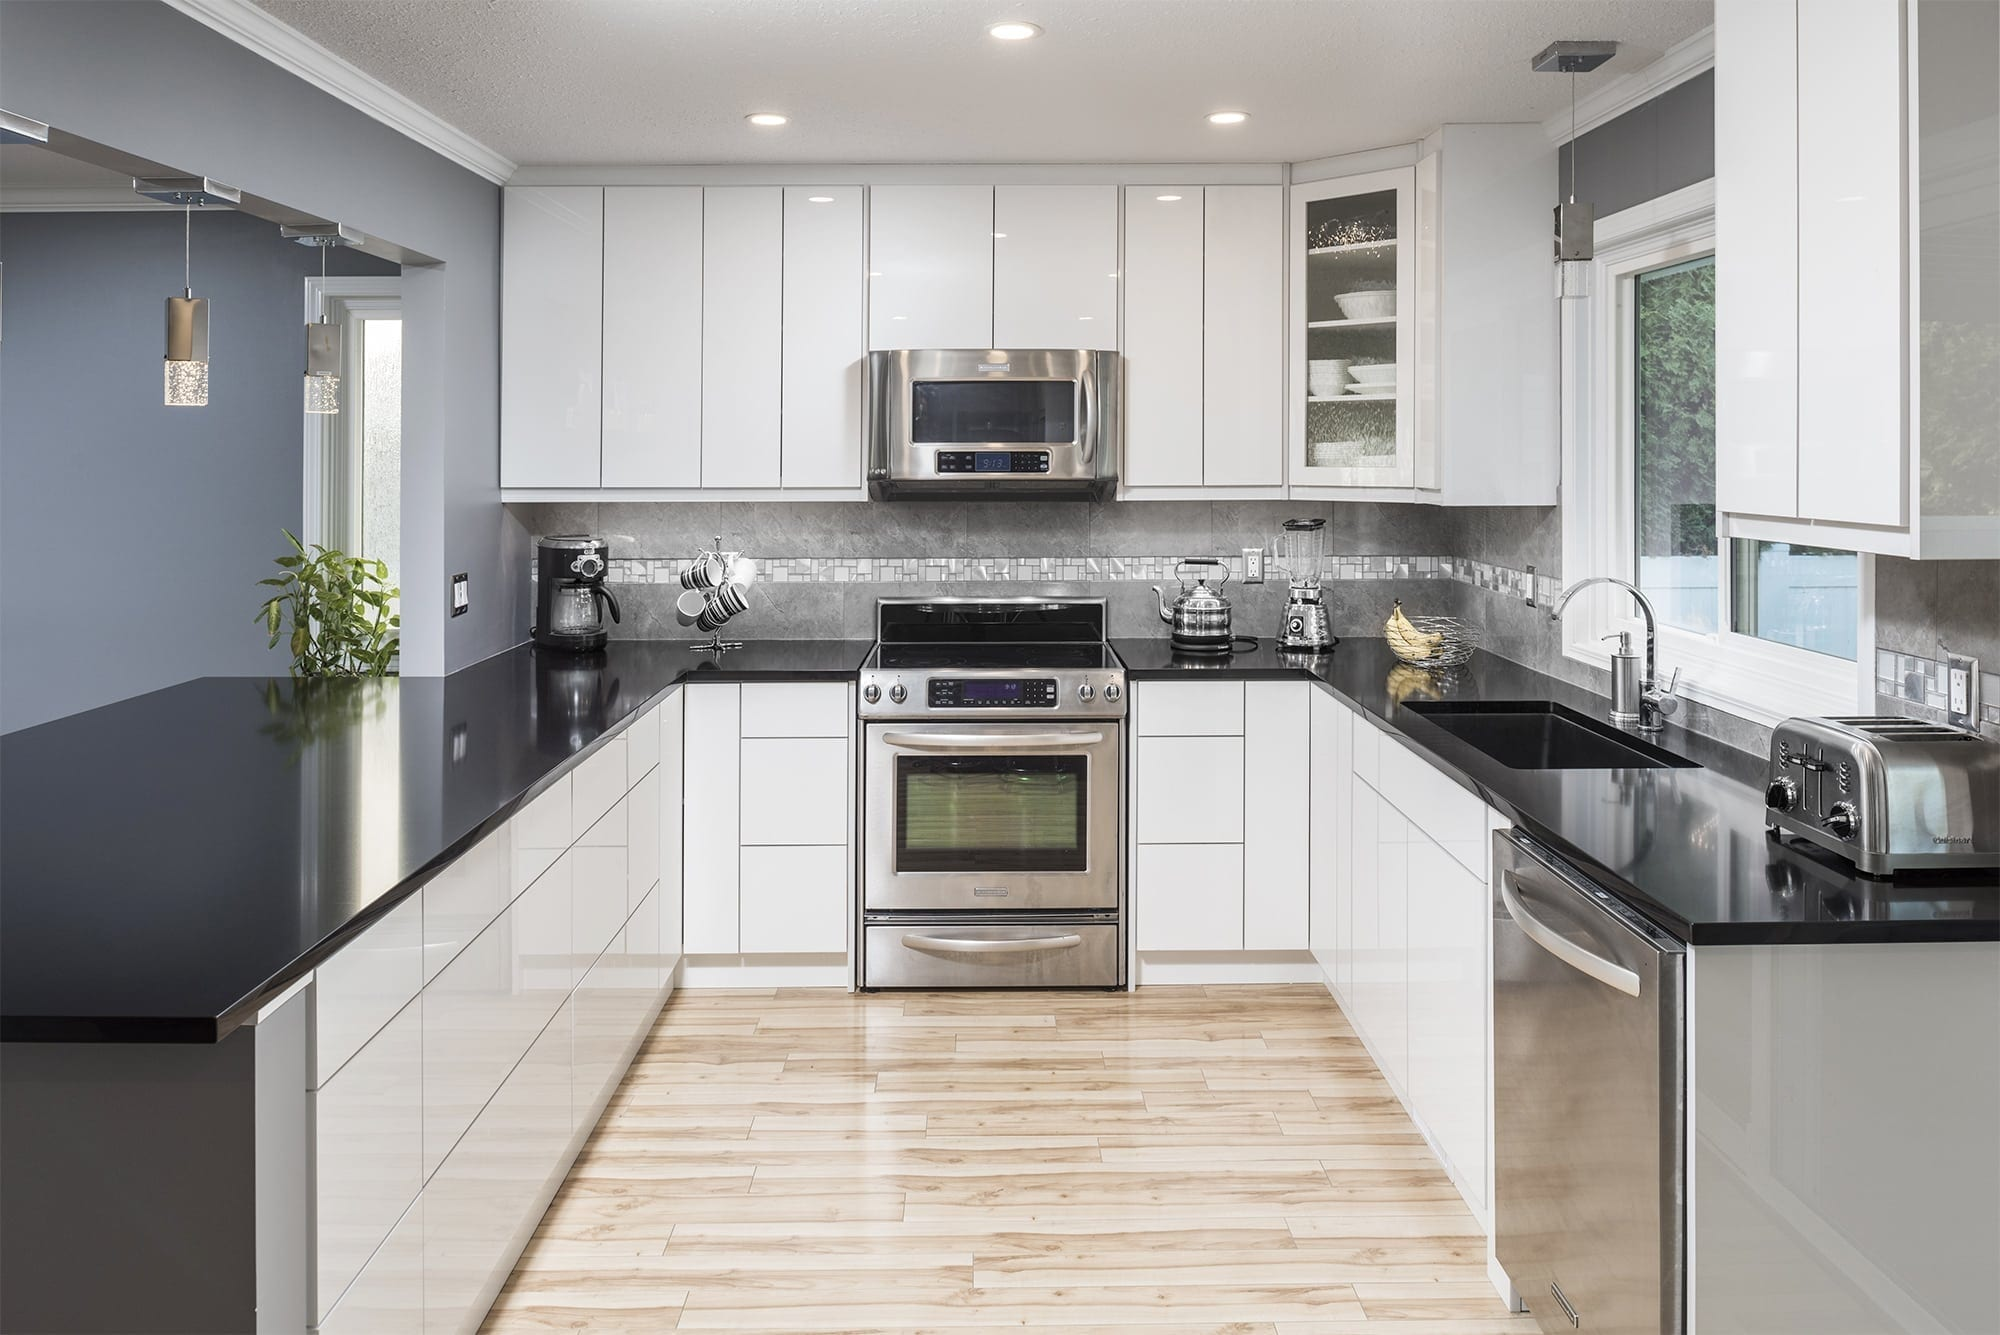 Master Painting and Renovations Chilliwack Kitchen Renovation Contractor Interior House Painting Abbotsford